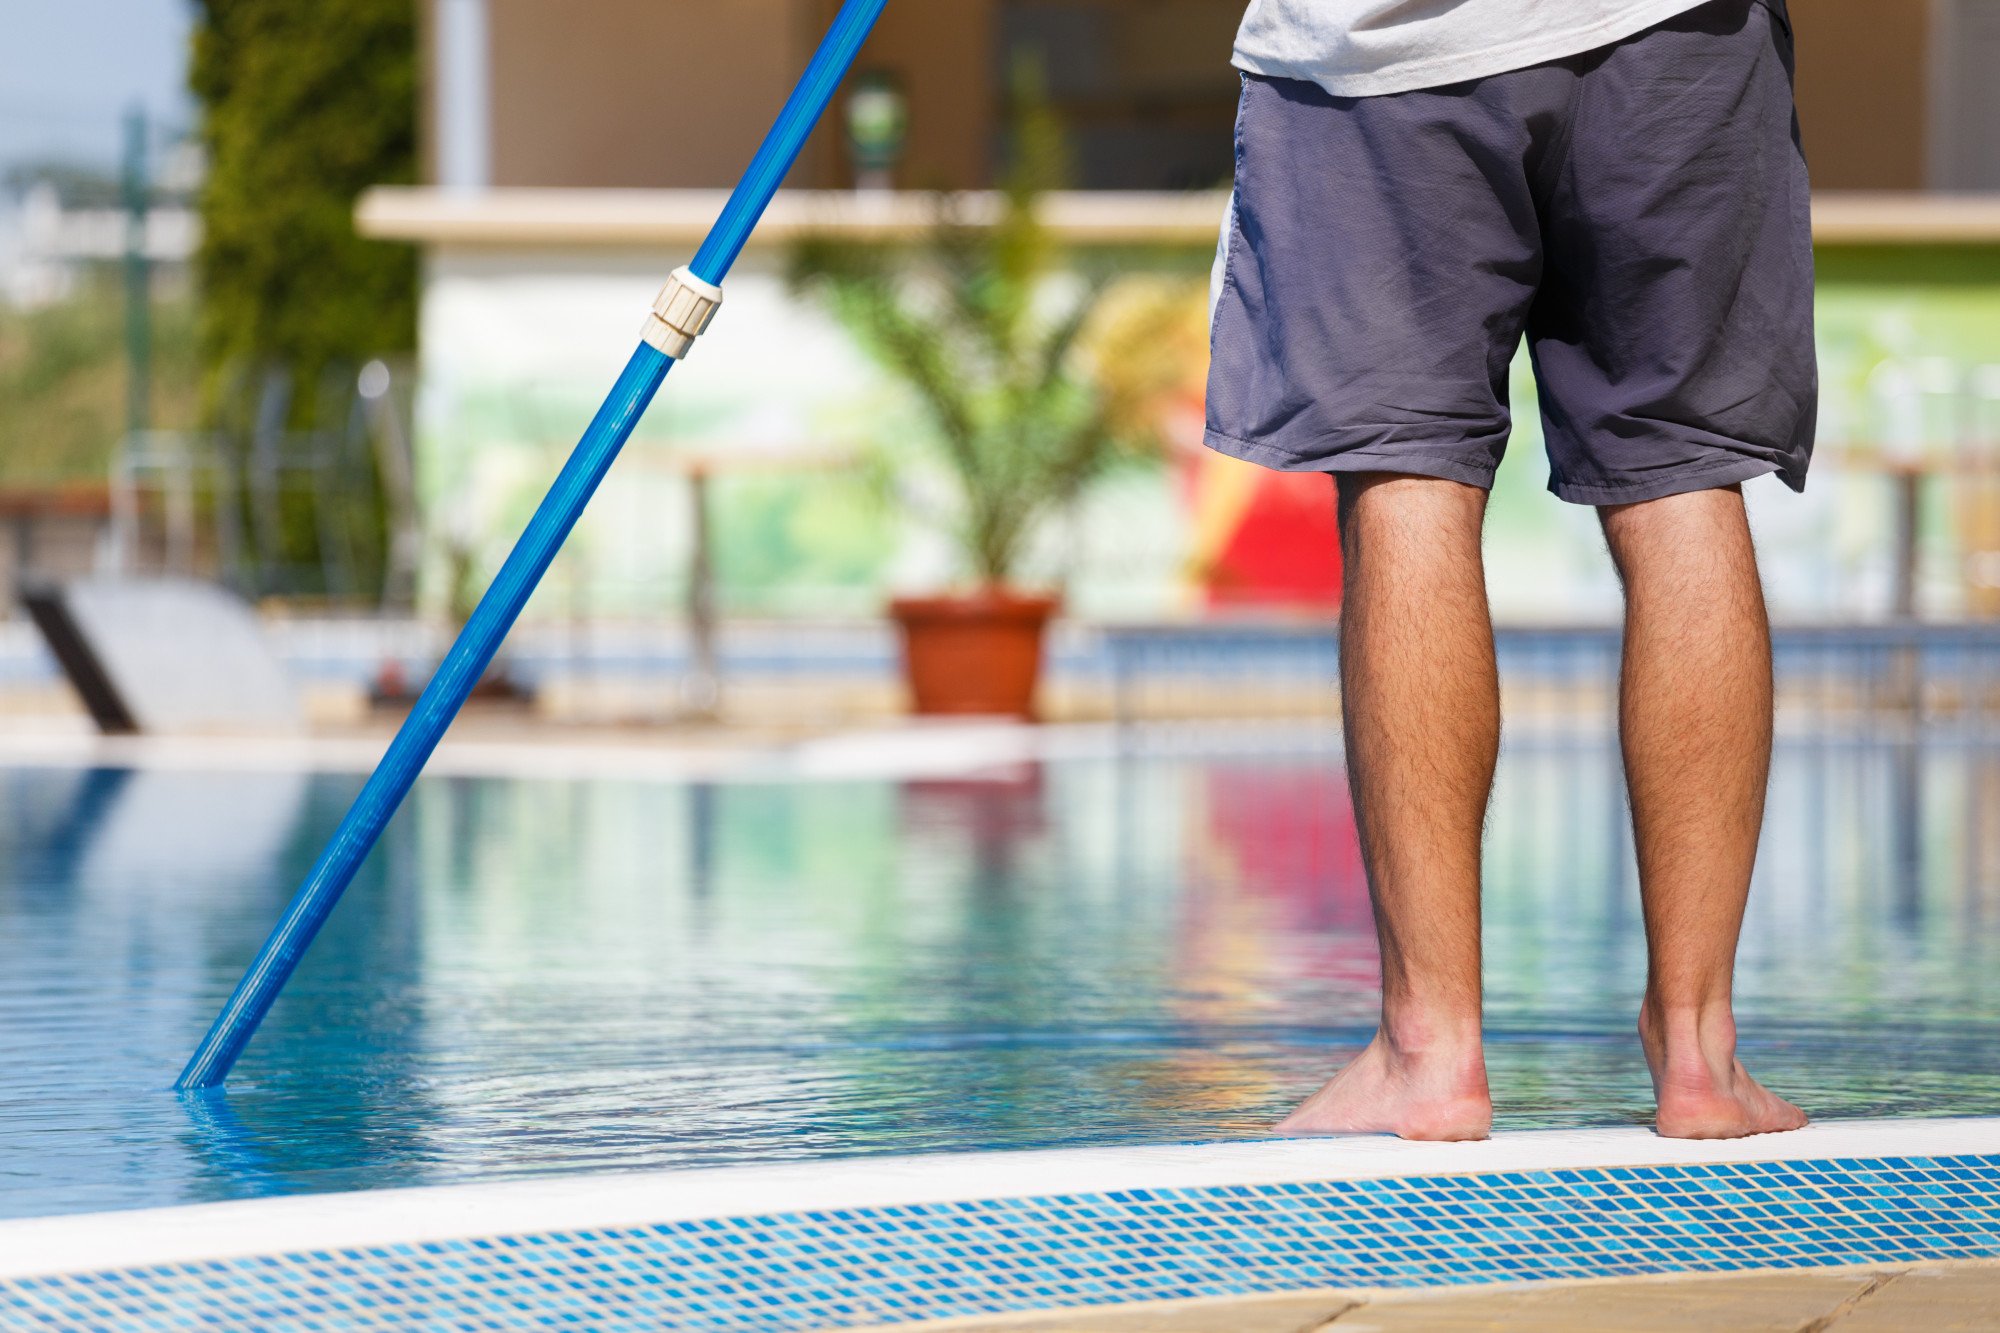 A Homeowner's Guide to Maintaining a Swimming Pool